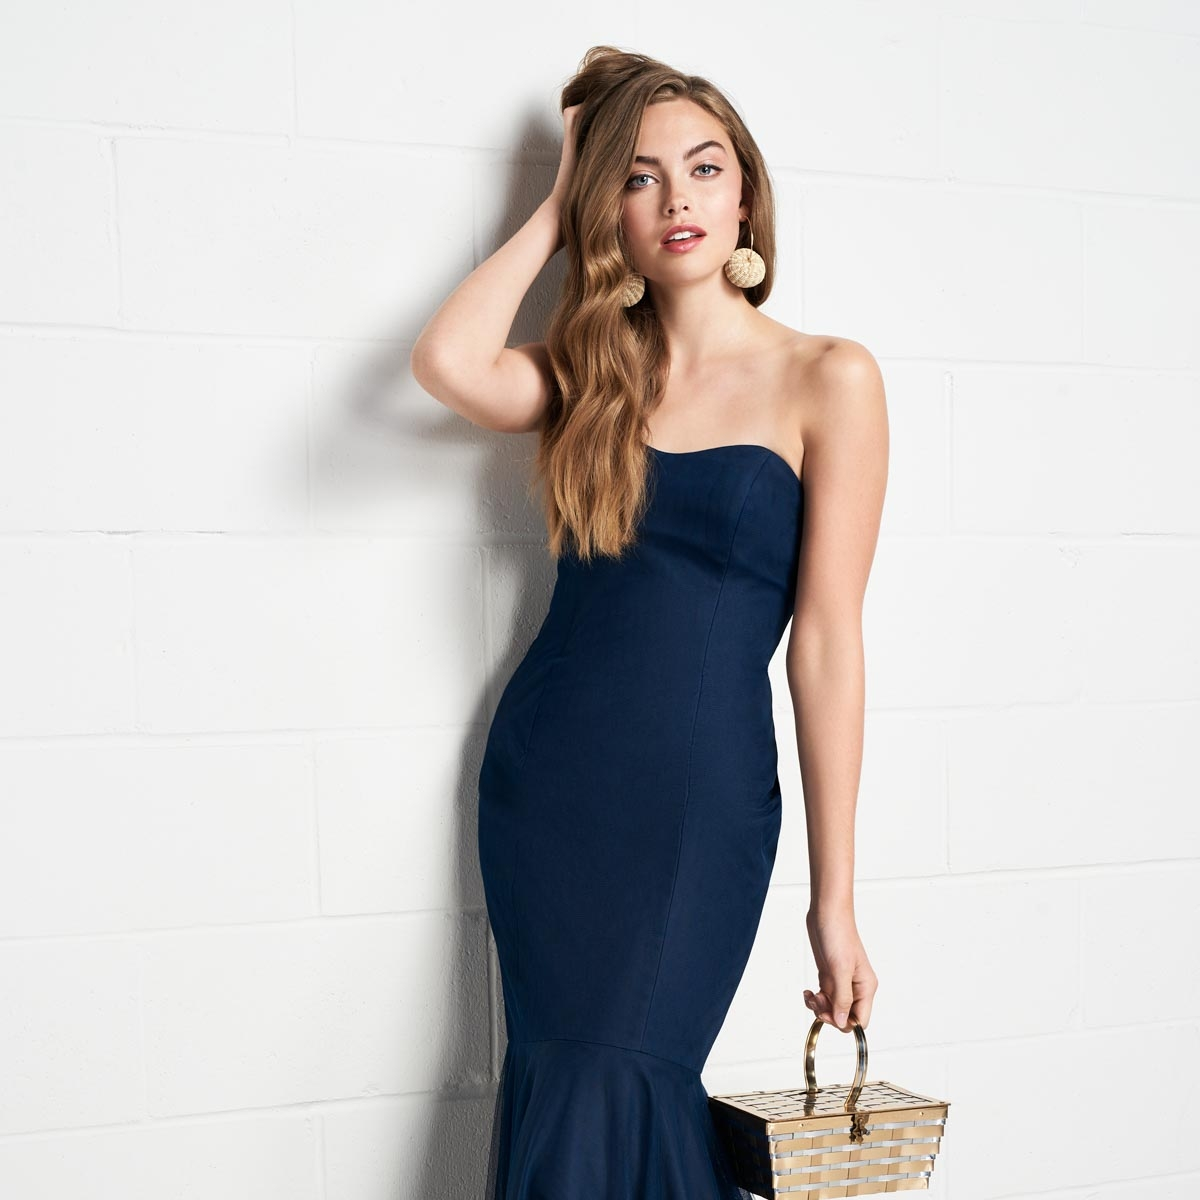 BRIDESMAIDS - From flowy bohemian, to fitted jersey, we have hundreds of options to outfit your entire entourage.